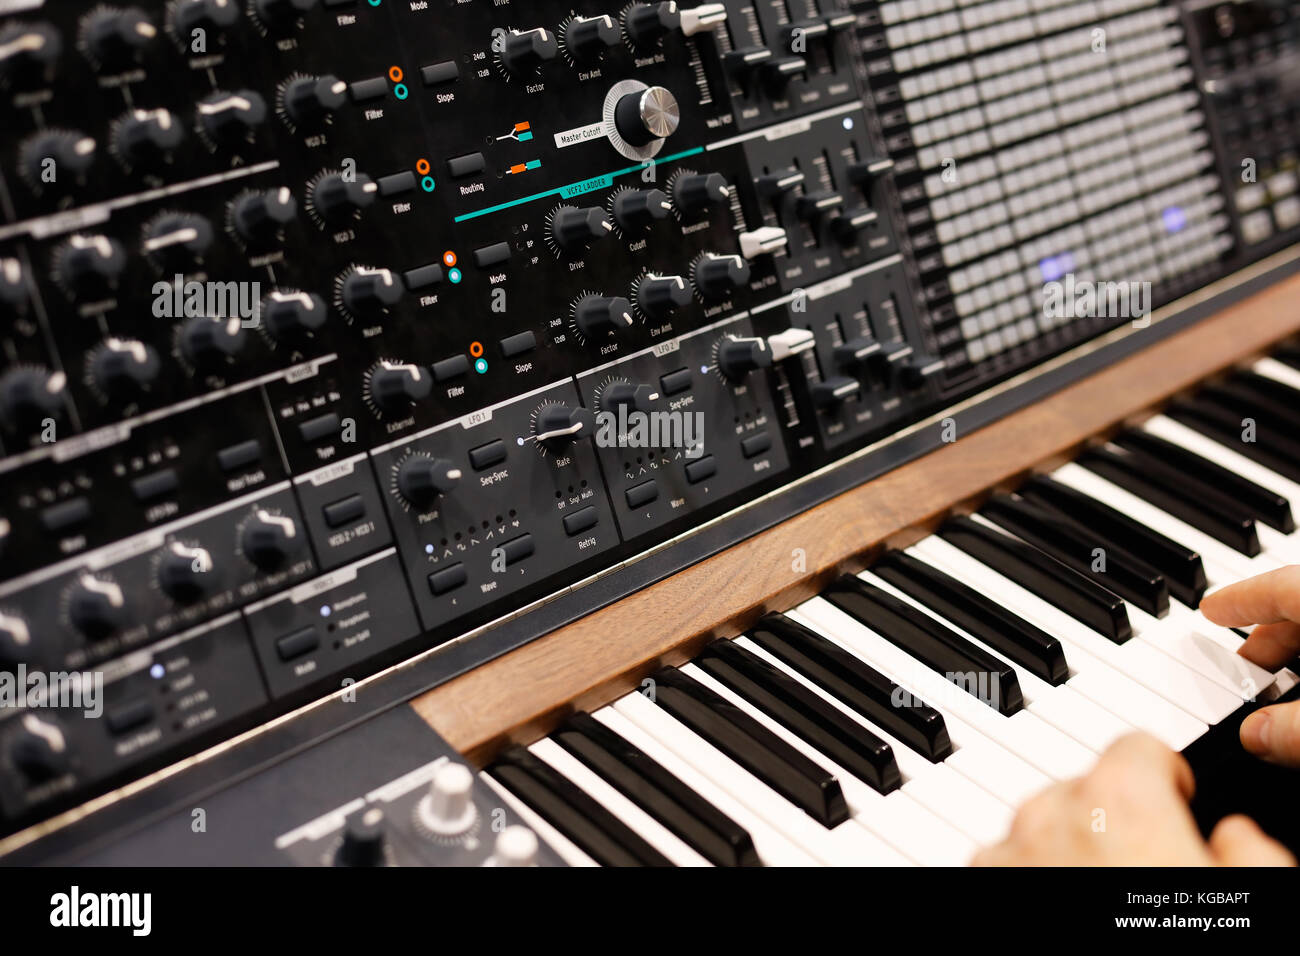 A musician at the keyboard of modern analog synthesizer. Selective focus. - Stock Image